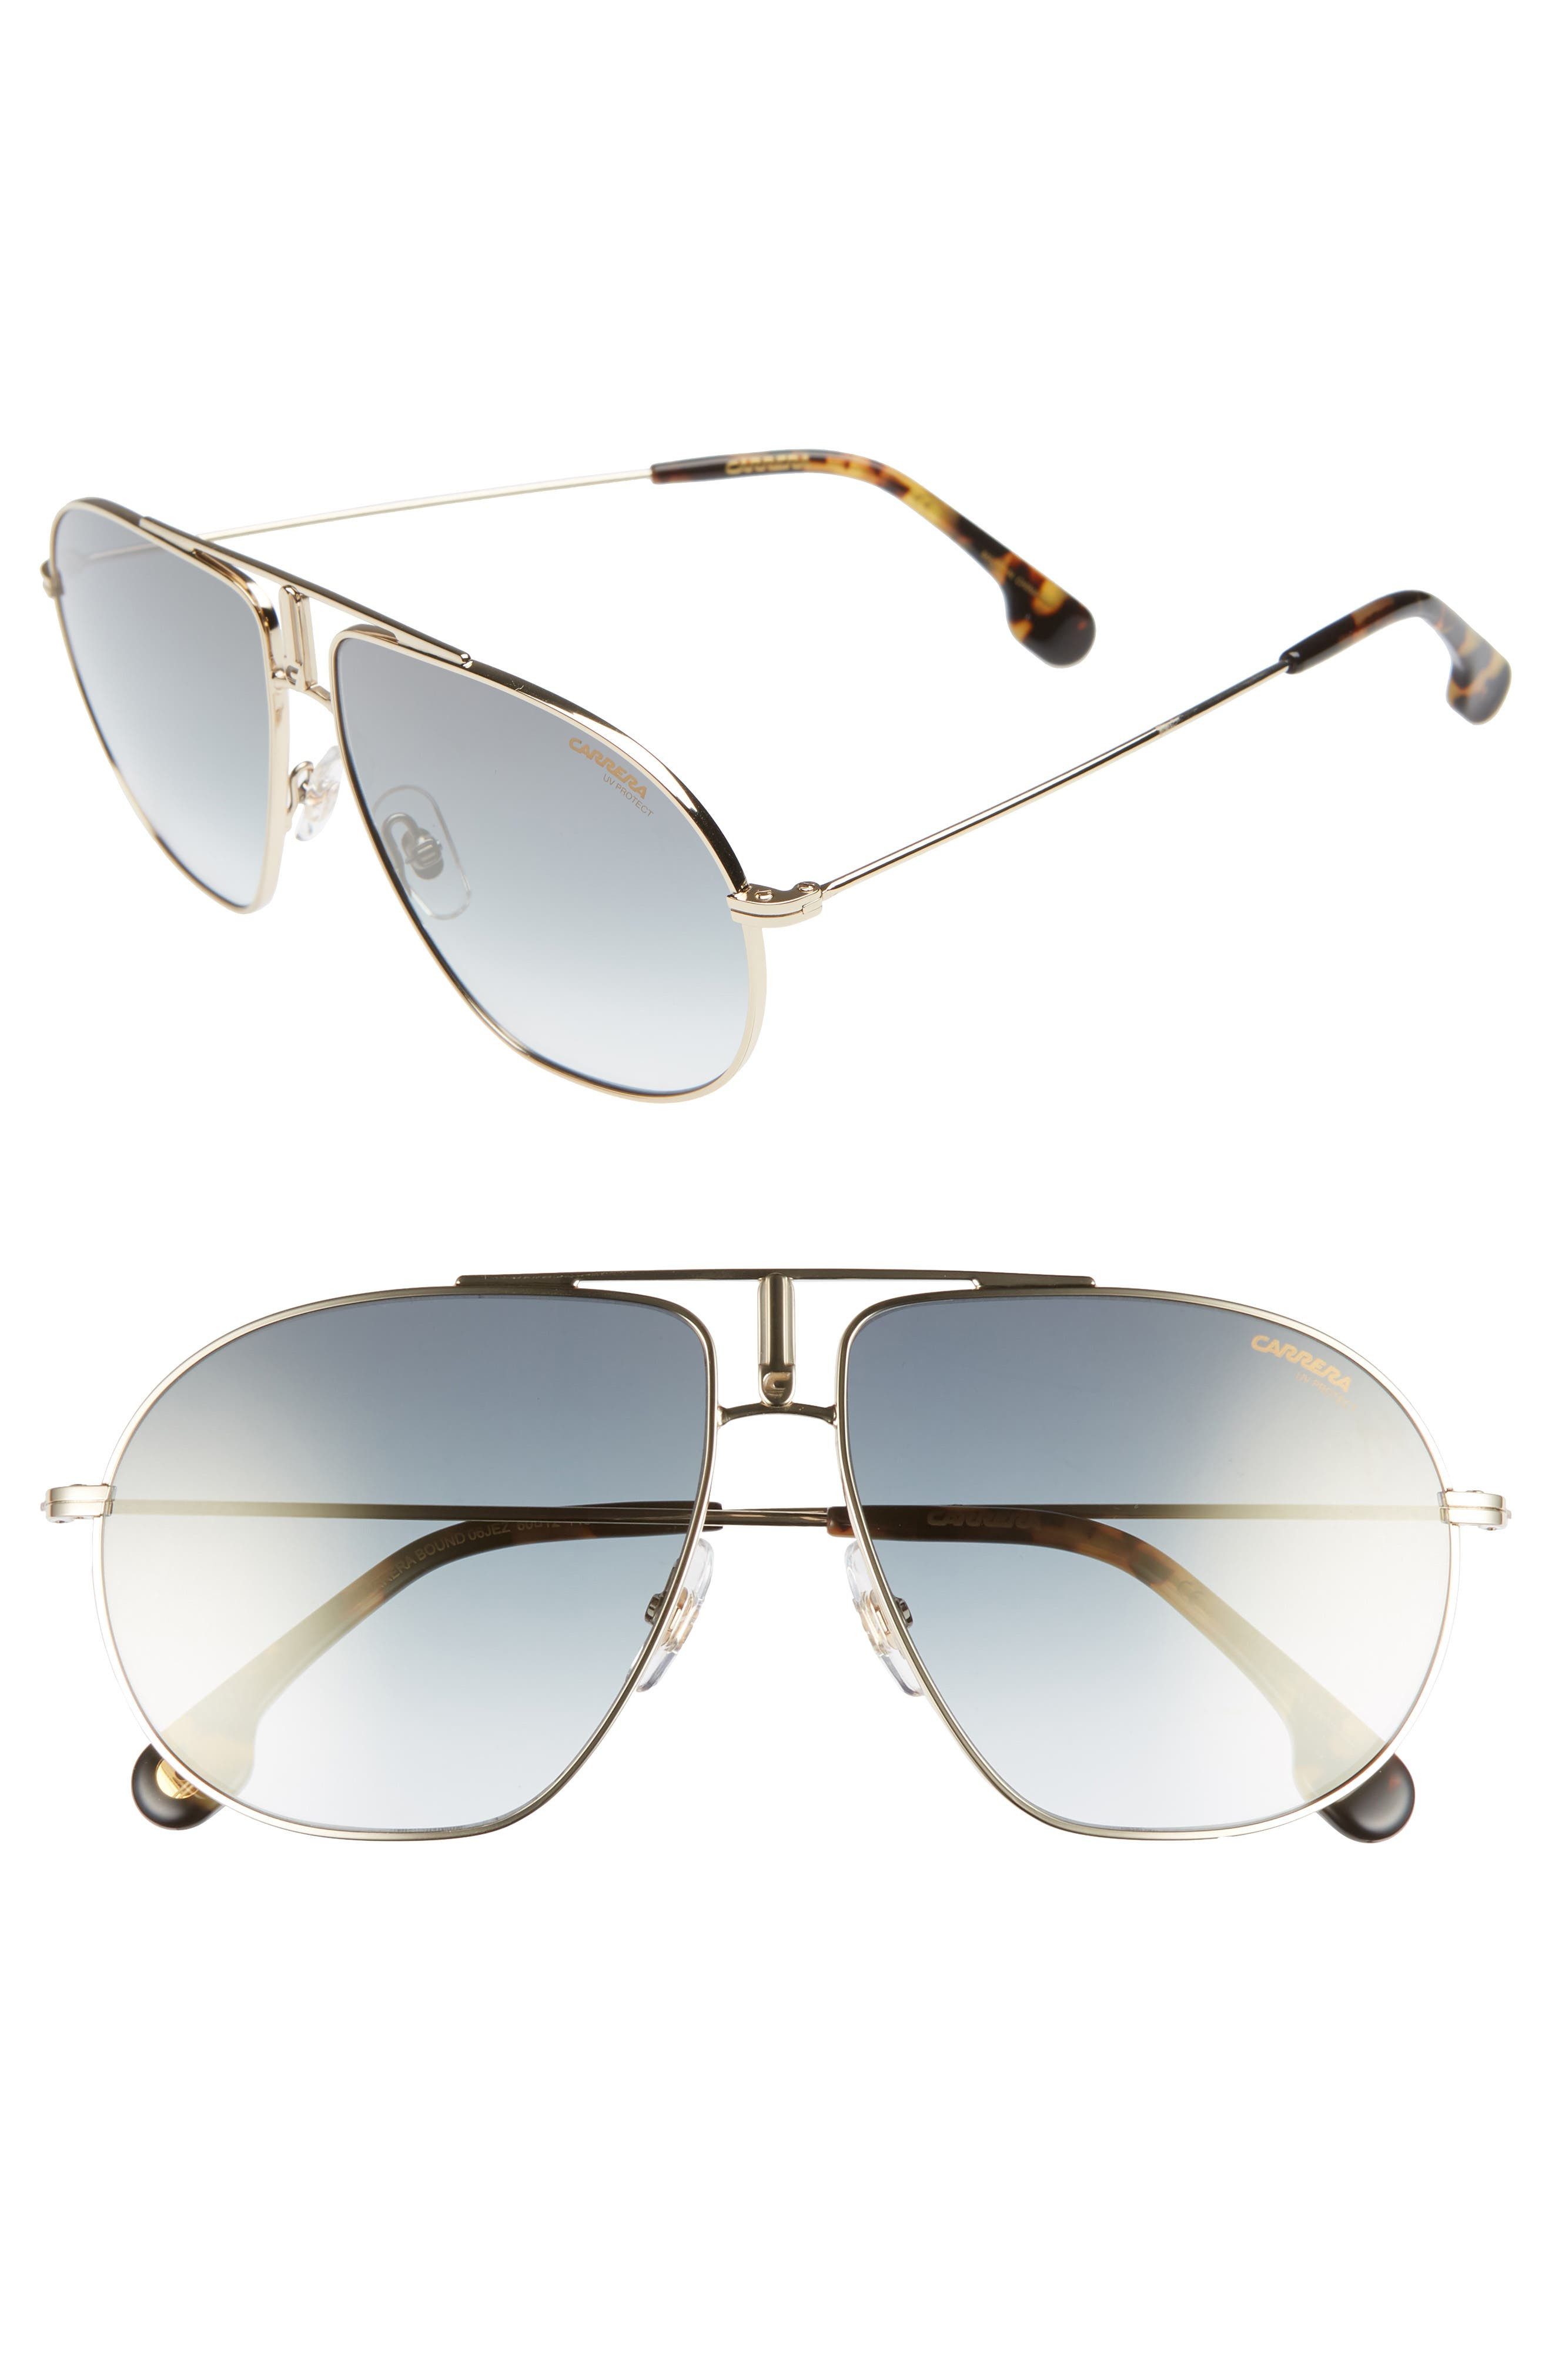 Carrera Eyewear Bounds 60Mm Gradient Aviator Sunglasses - Gold